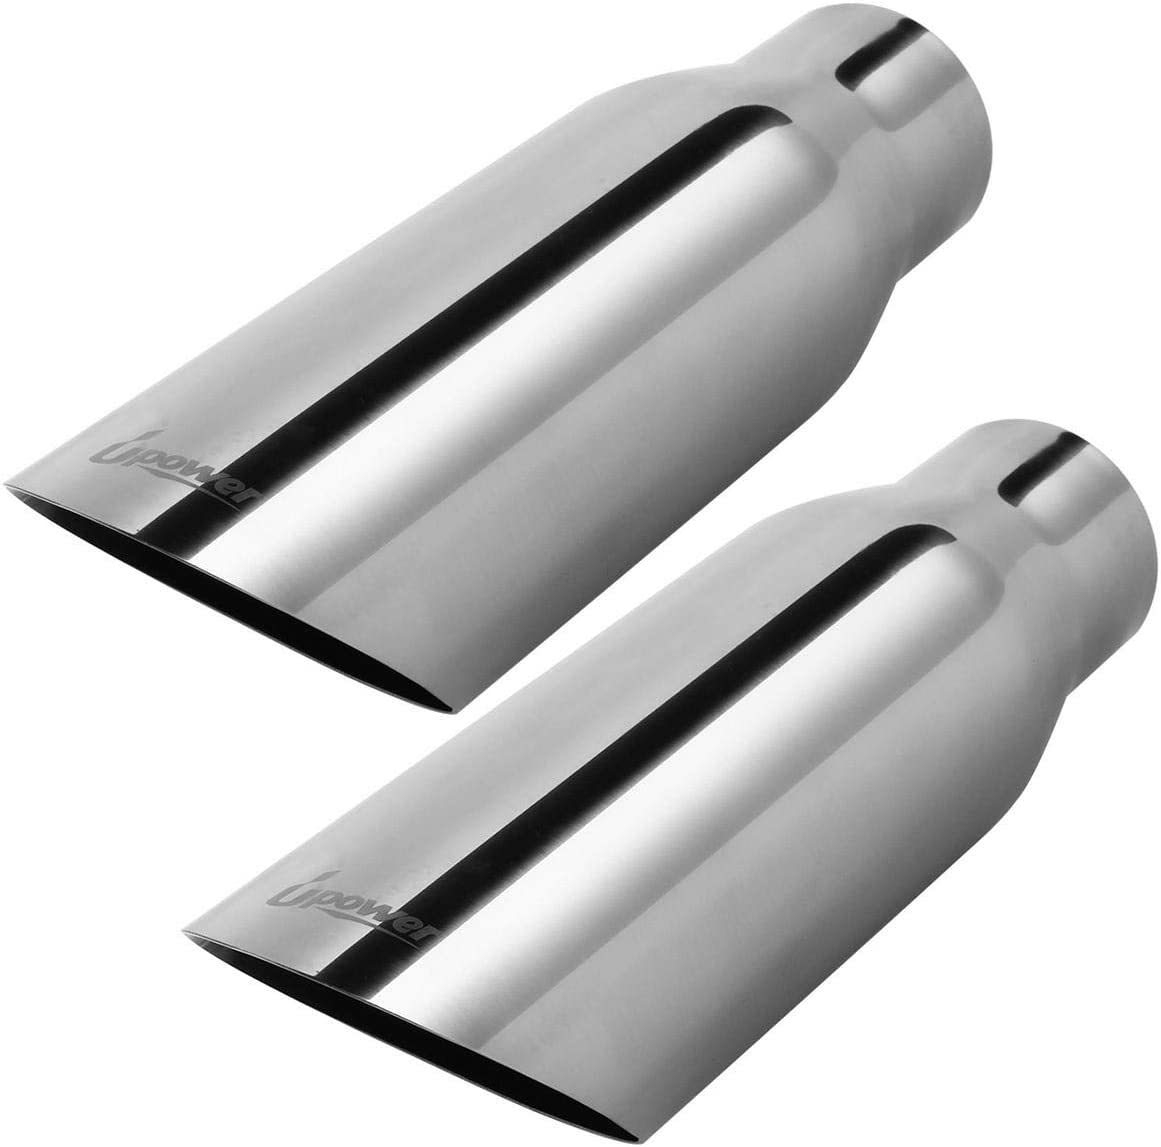 "Exhaust Tip Stainless Steel 2.5/"" Inlet 3.5/"" Outlet//12/"" Long  Angle Cut Weld ON"